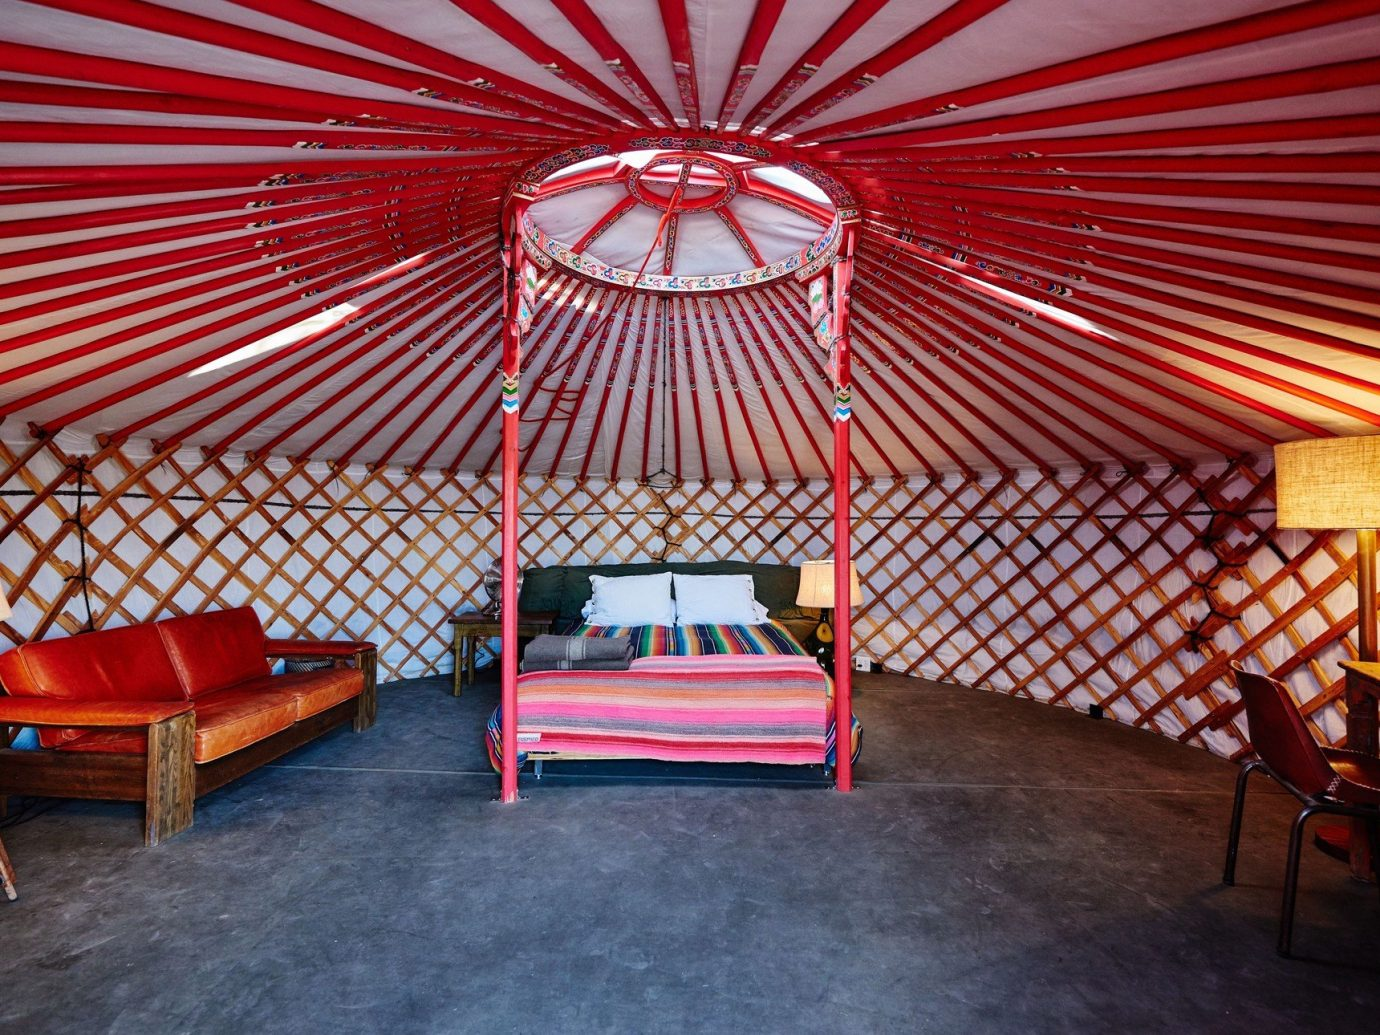 artistic artsy bed Bedroom Glamping Hip interior isolation living area living room Outdoors + Adventure quirky remote tent tents trendy Weekend Getaways floor chair indoor room red umbrella stage accessory interior design area furniture